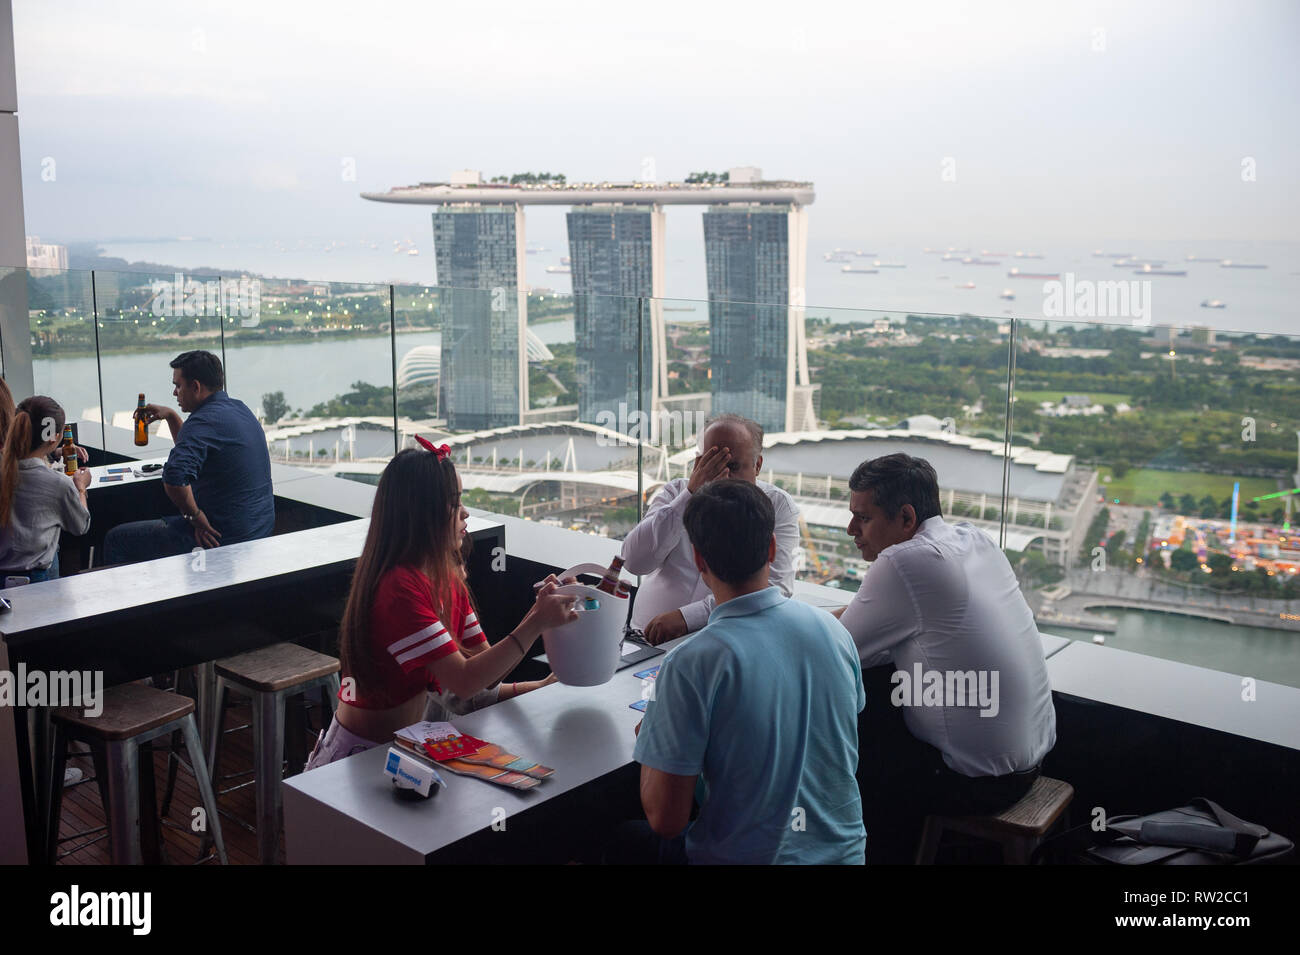 28.12.2018, Singapore, Republic of Singapore, Asia - Guests at the Empire Sky Lounge with the Marina Bay Sands Hotel in the backdrop. - Stock Image